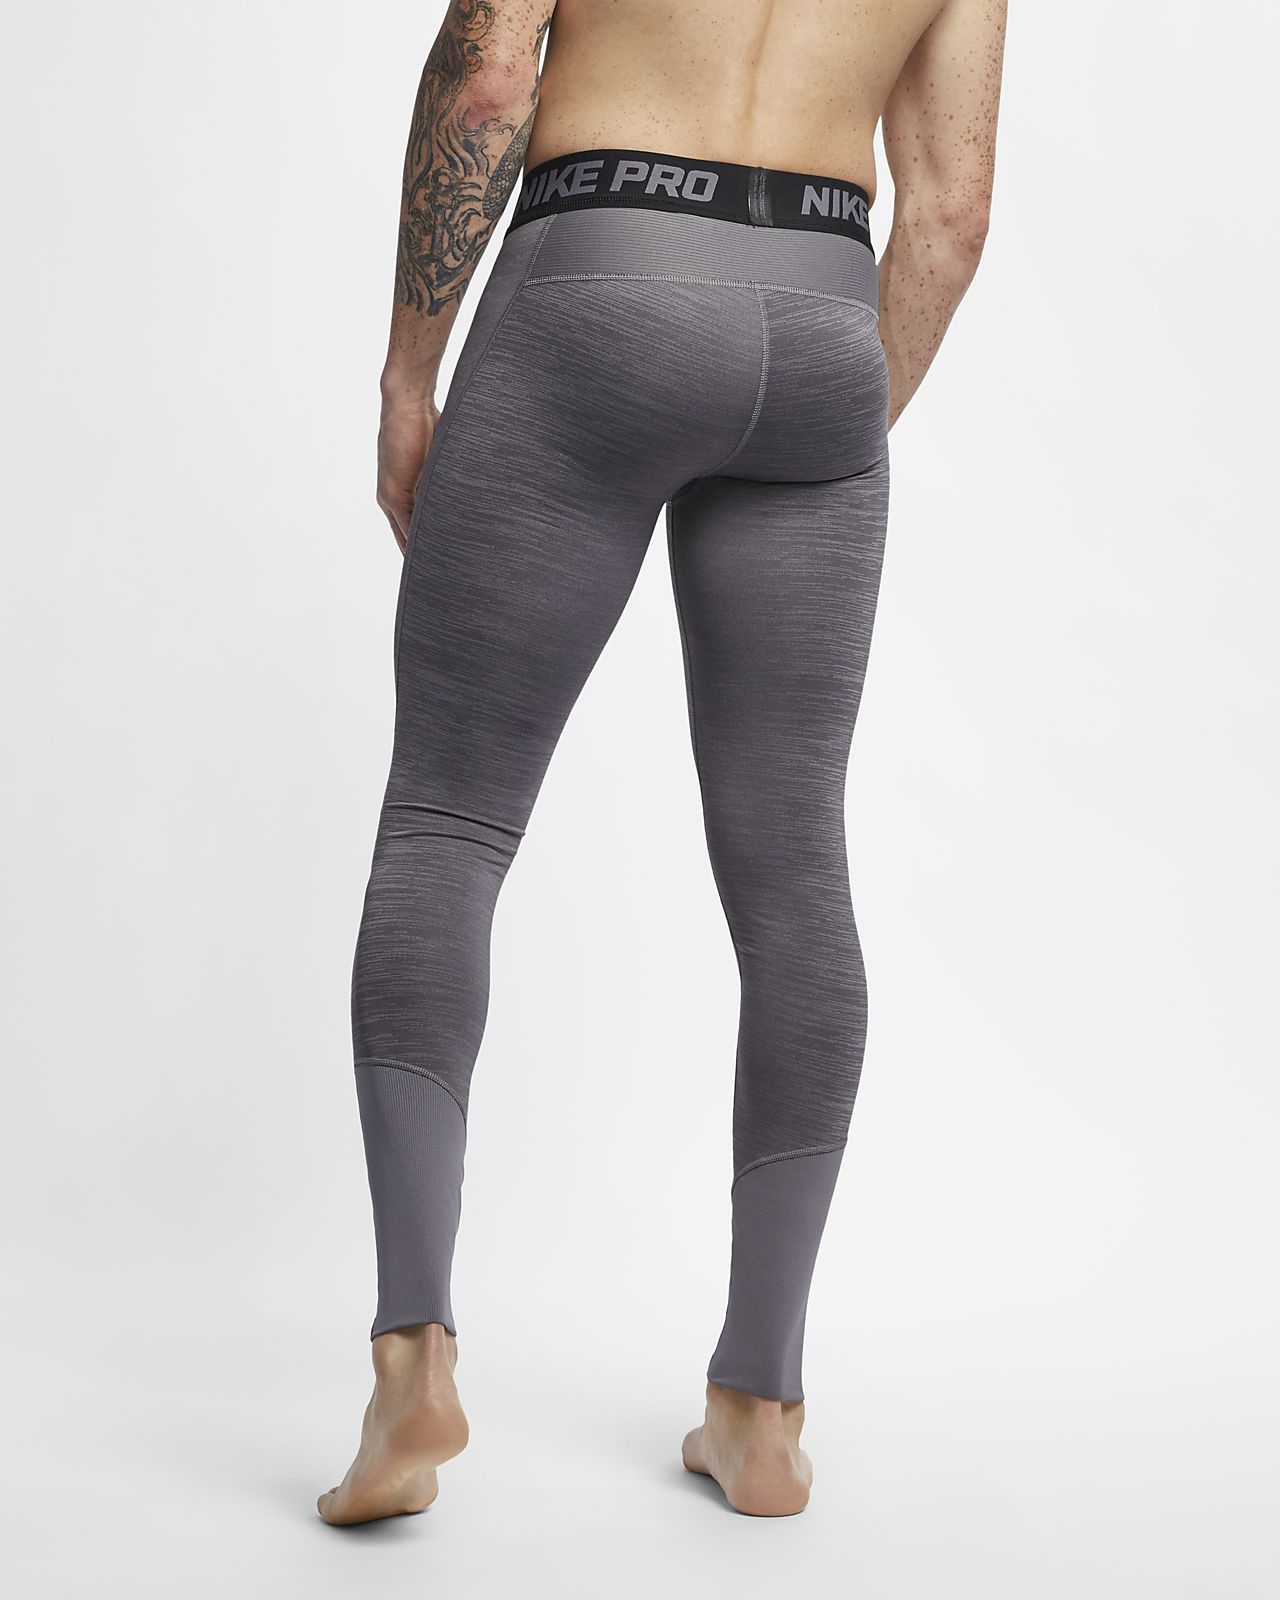 Nike Pro Fit Base Layer Size S-m High Safety Clothing, Shoes & Accessories